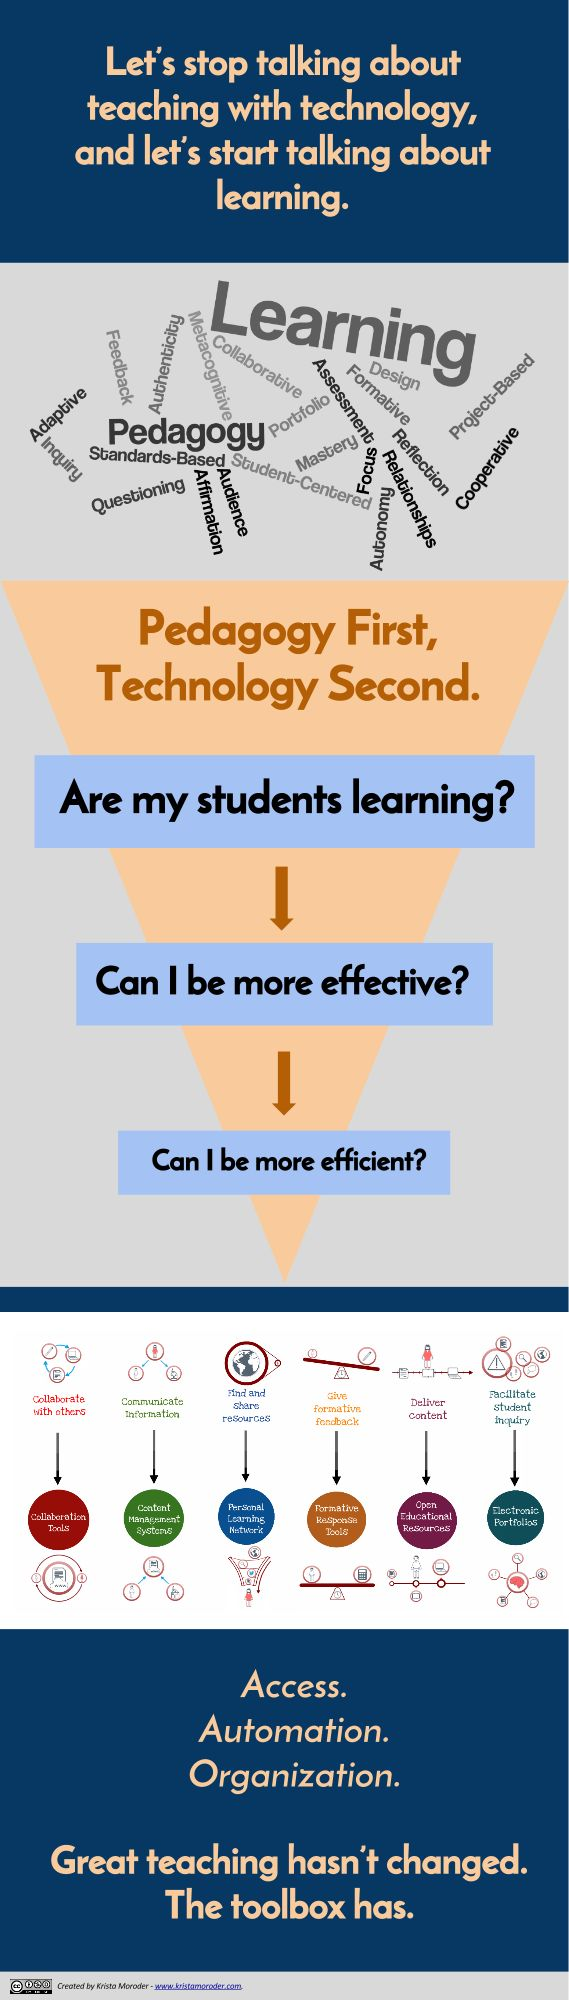 """Krista Moroder: """"TPACK or SAMR or ........the focus for professional development starts with good teaching practices- rather than starting with the tool."""""""